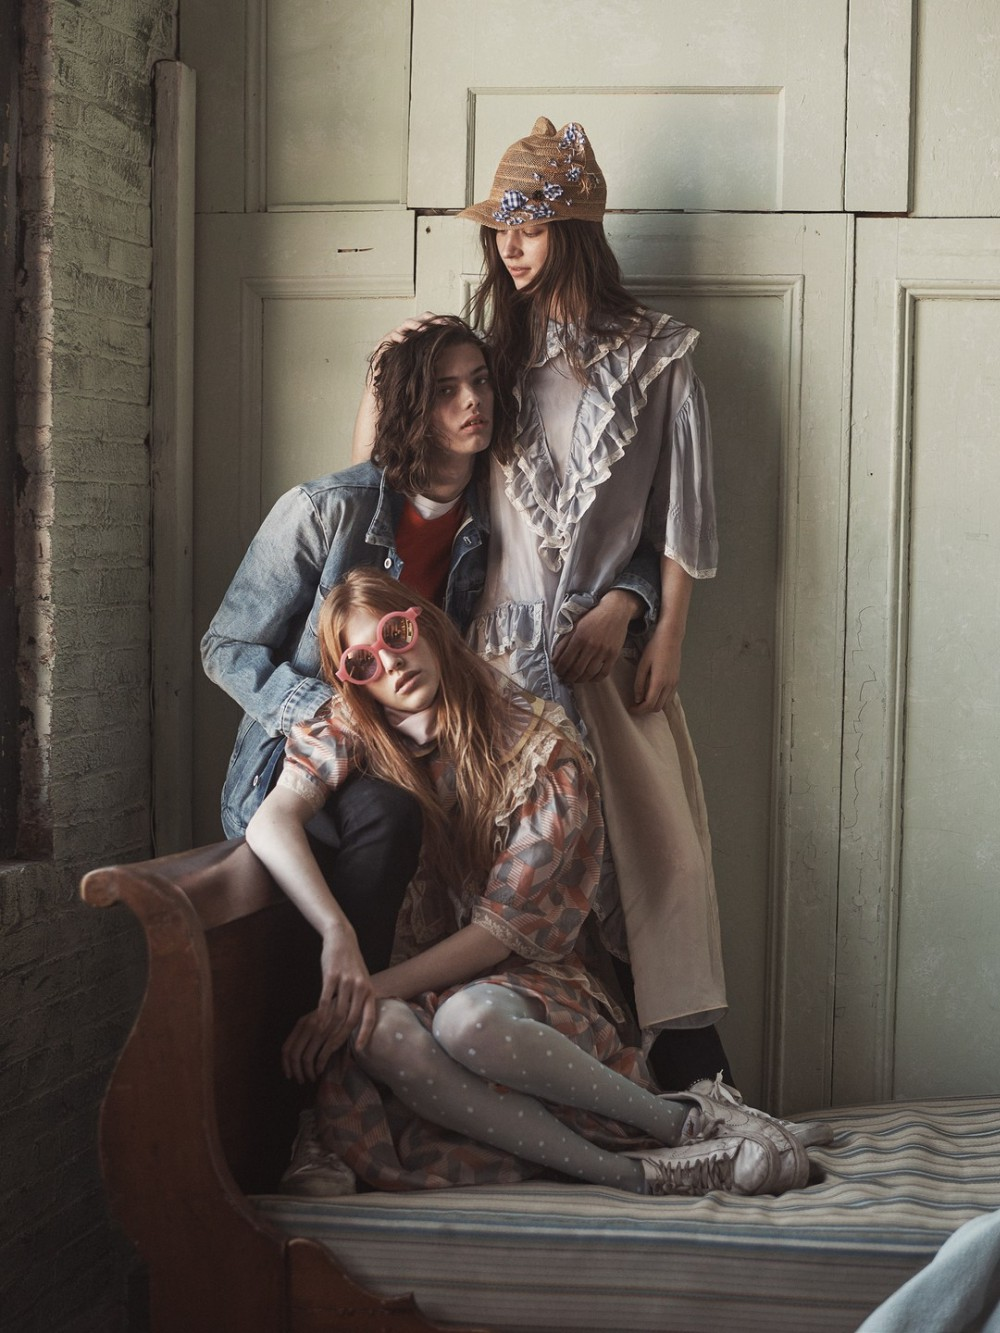 Lottie Hayes, Niki Trefilova, Erin Mommsen By Steven Pan For Numéro #170 February 2016 9